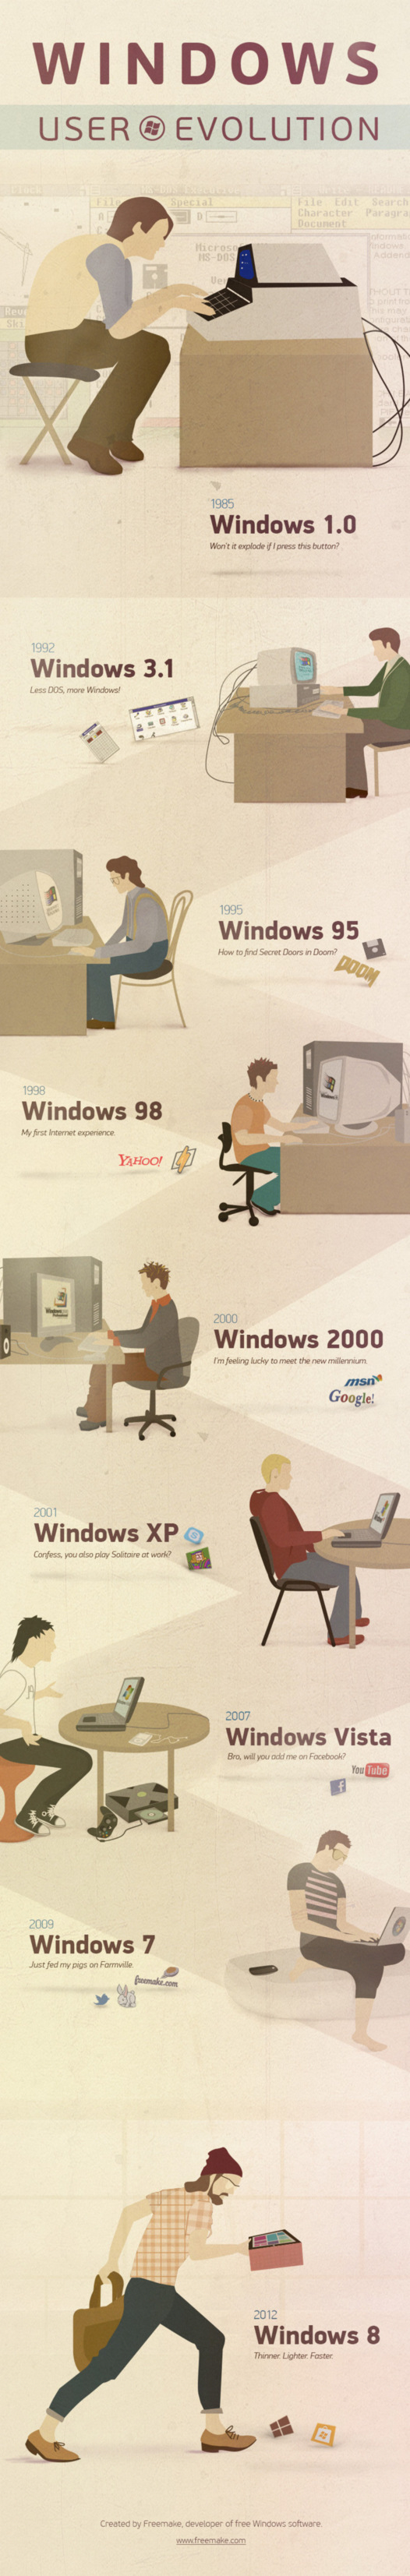 Les volutions de Windows de 1985  2012 en 1 image